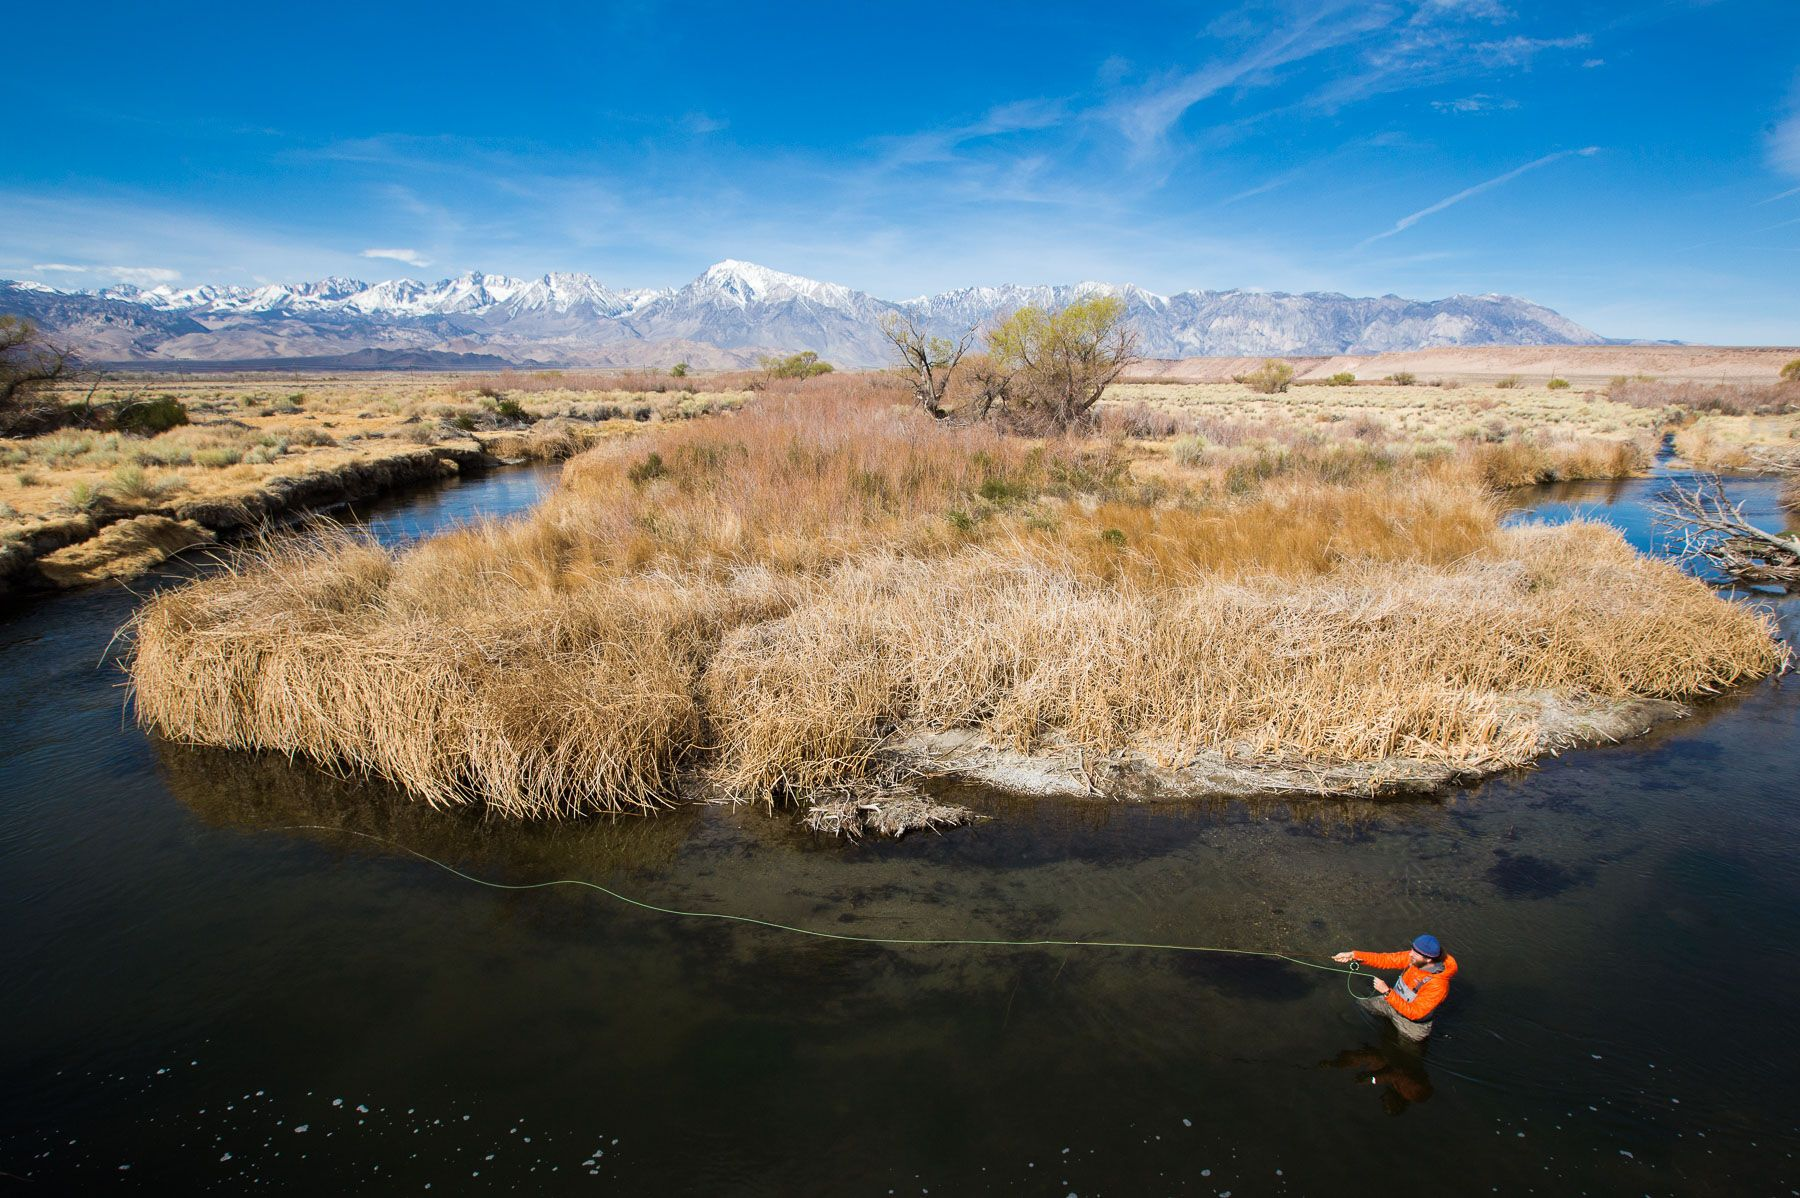 Early Morning Fly Fishing on the Owens River